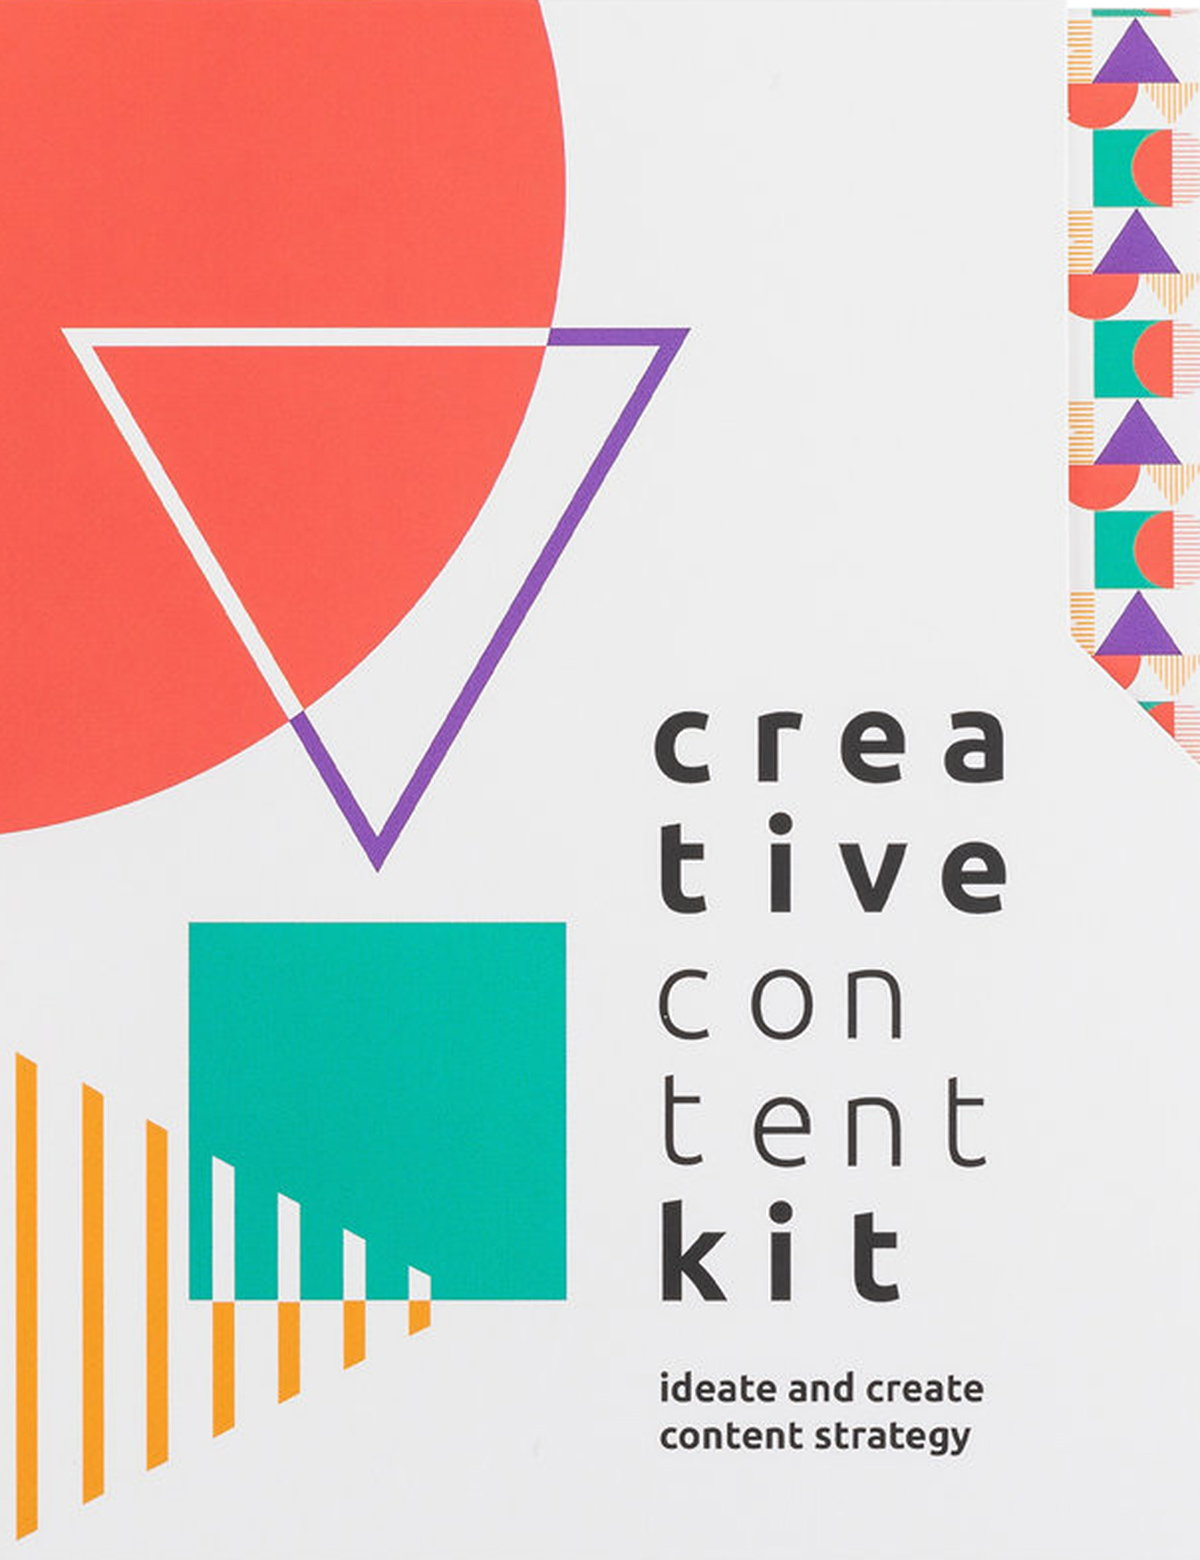 Creative Content Kit - A Method to Ideate and Create Content Strategy